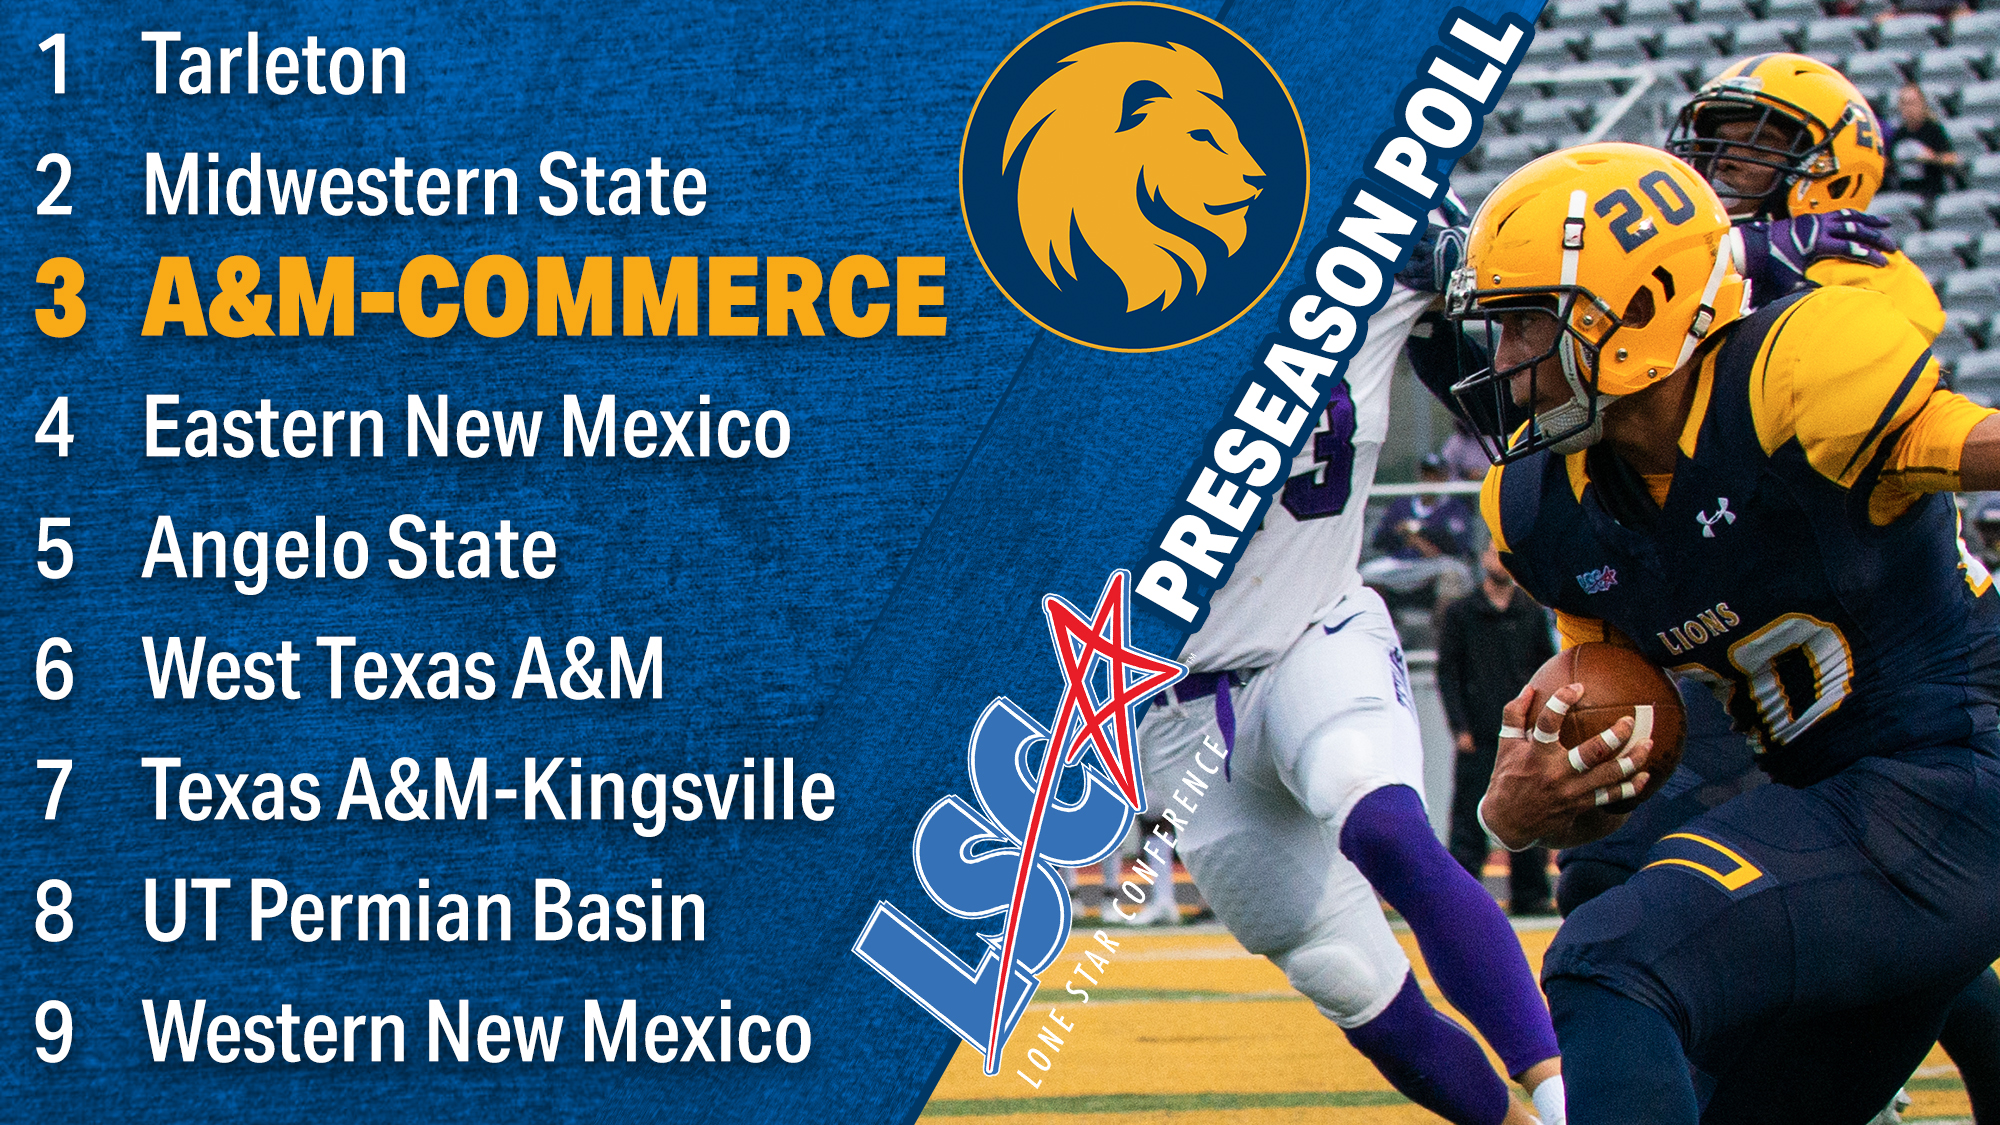 Football - Texas A&M University-Commerce Athletics